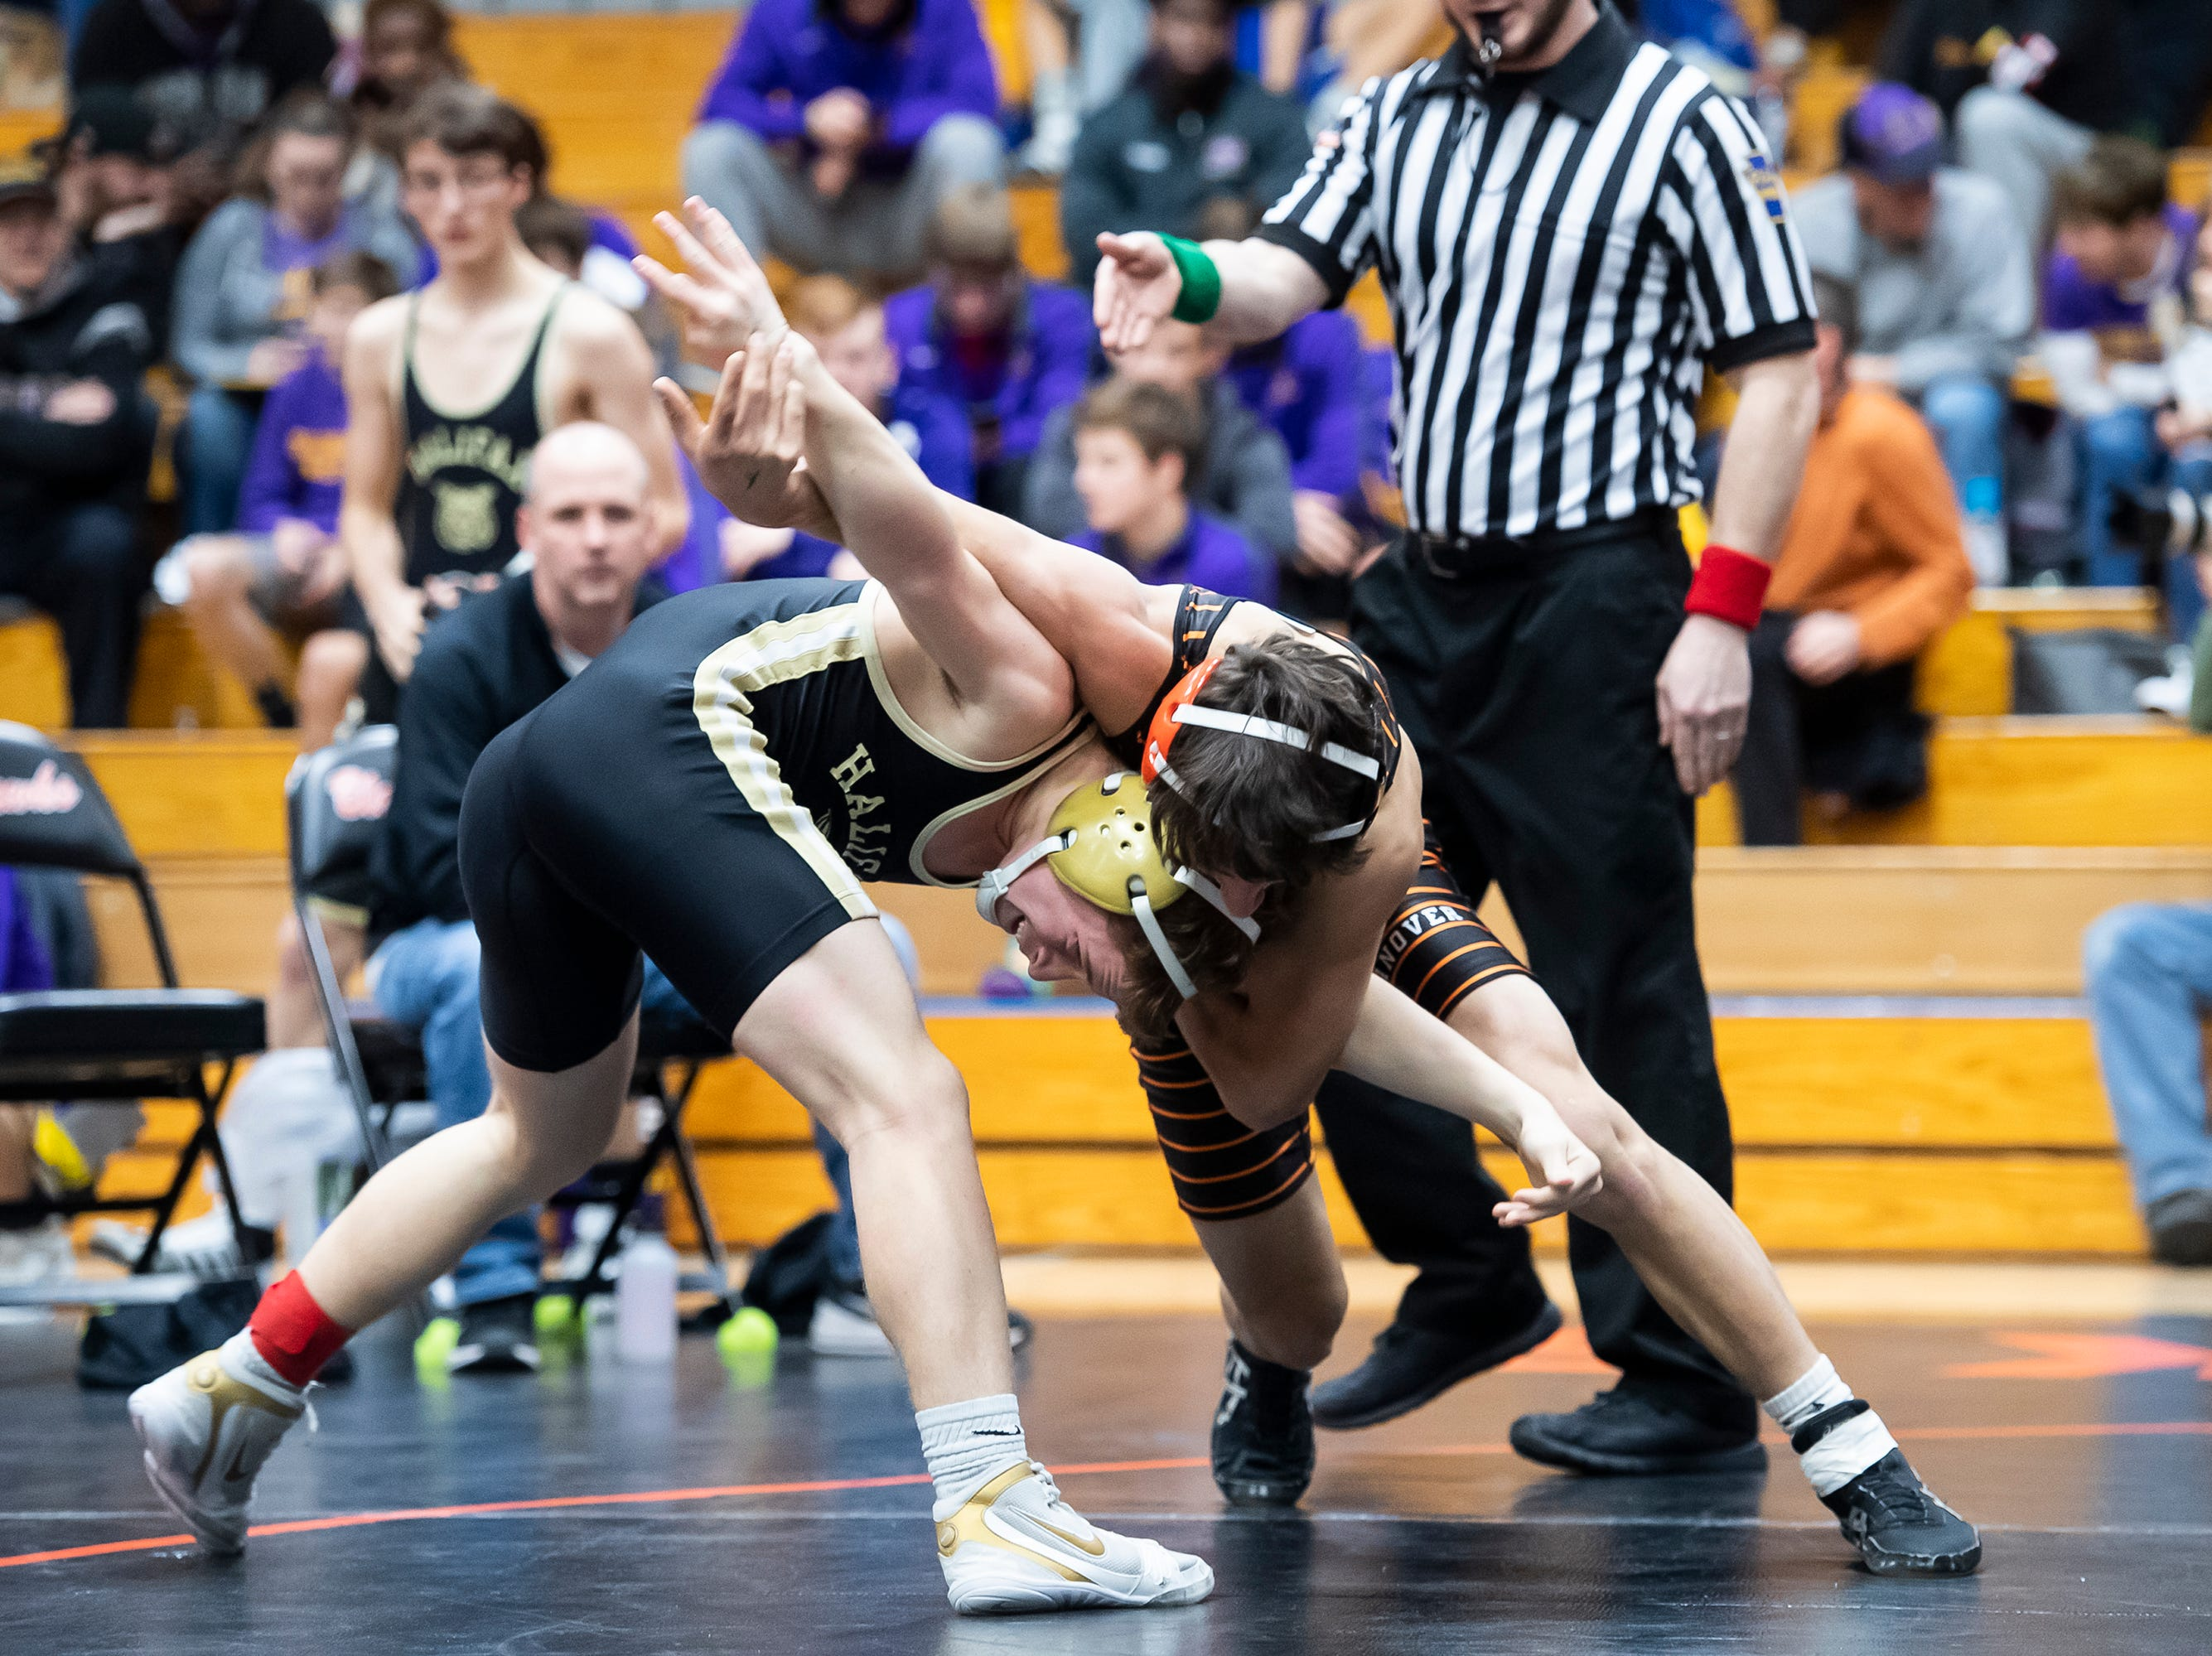 Hanover's Dominic Taylor, right, wrestles Halifax's Austin Mundorf in a 113-pound bout during the first day of the District 3 Class 2A Section I tournament at Susquenita High School Friday, February 15, 2019. Taylor won by fall.